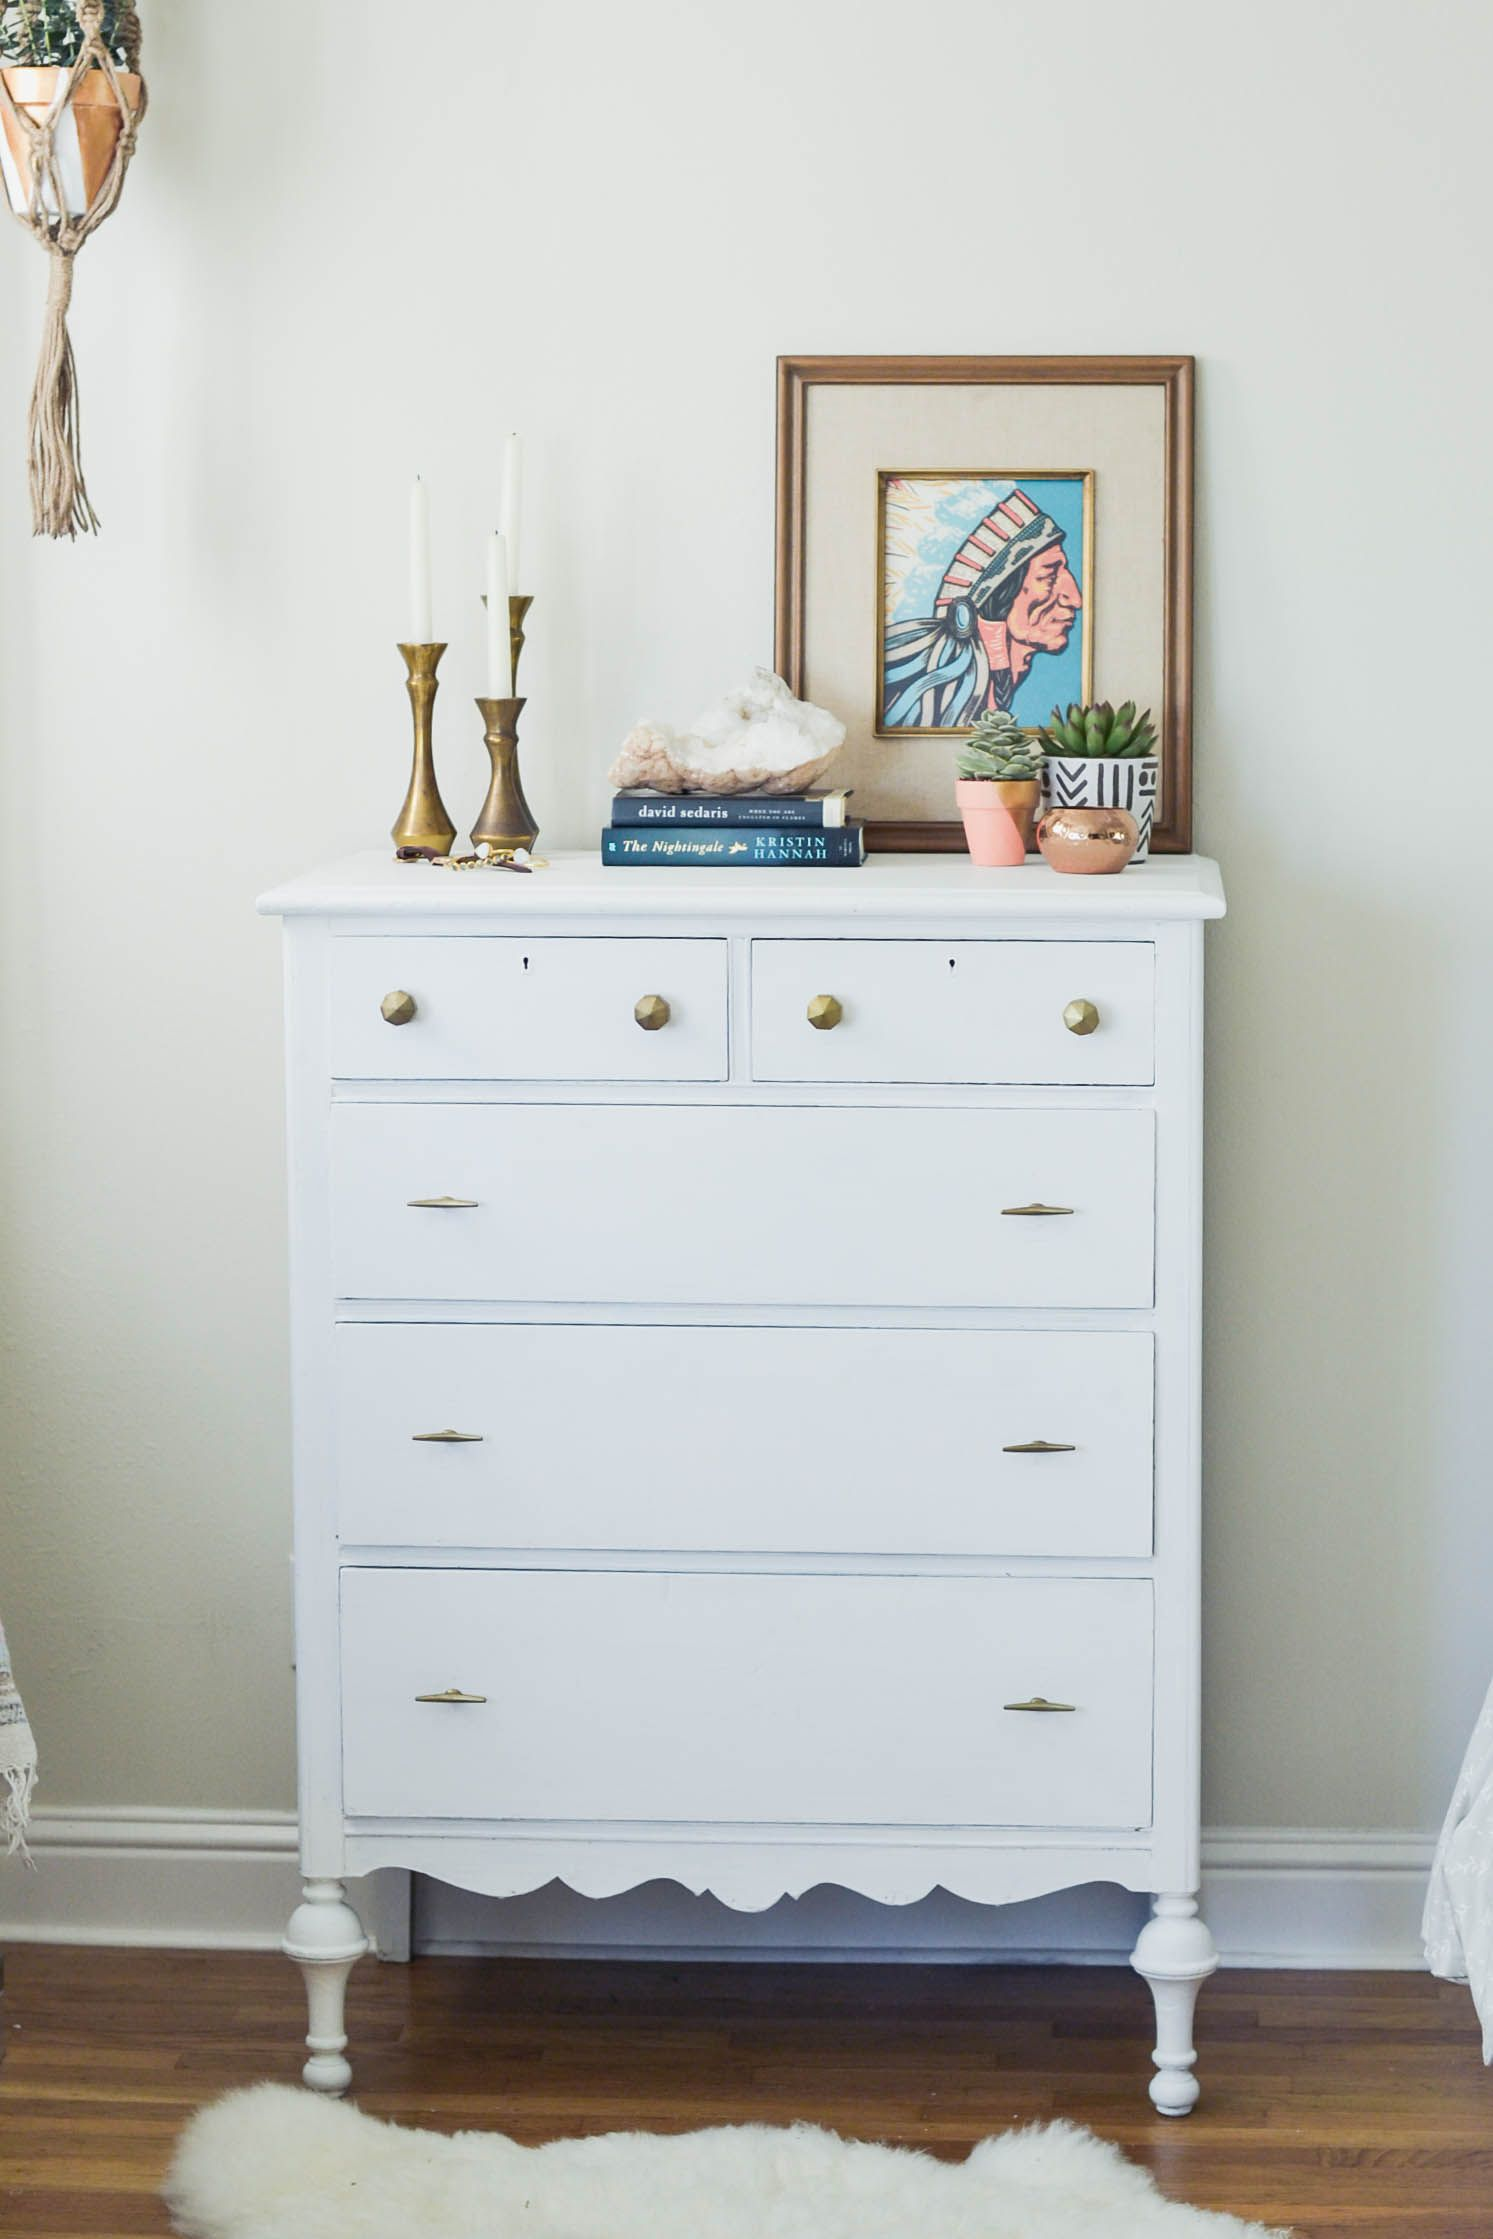 I Moved To San Francisco In August And Just Got A Dresser Last Week That S How Long D Been Looking For The Perfect One Searched My Go Tos Urban